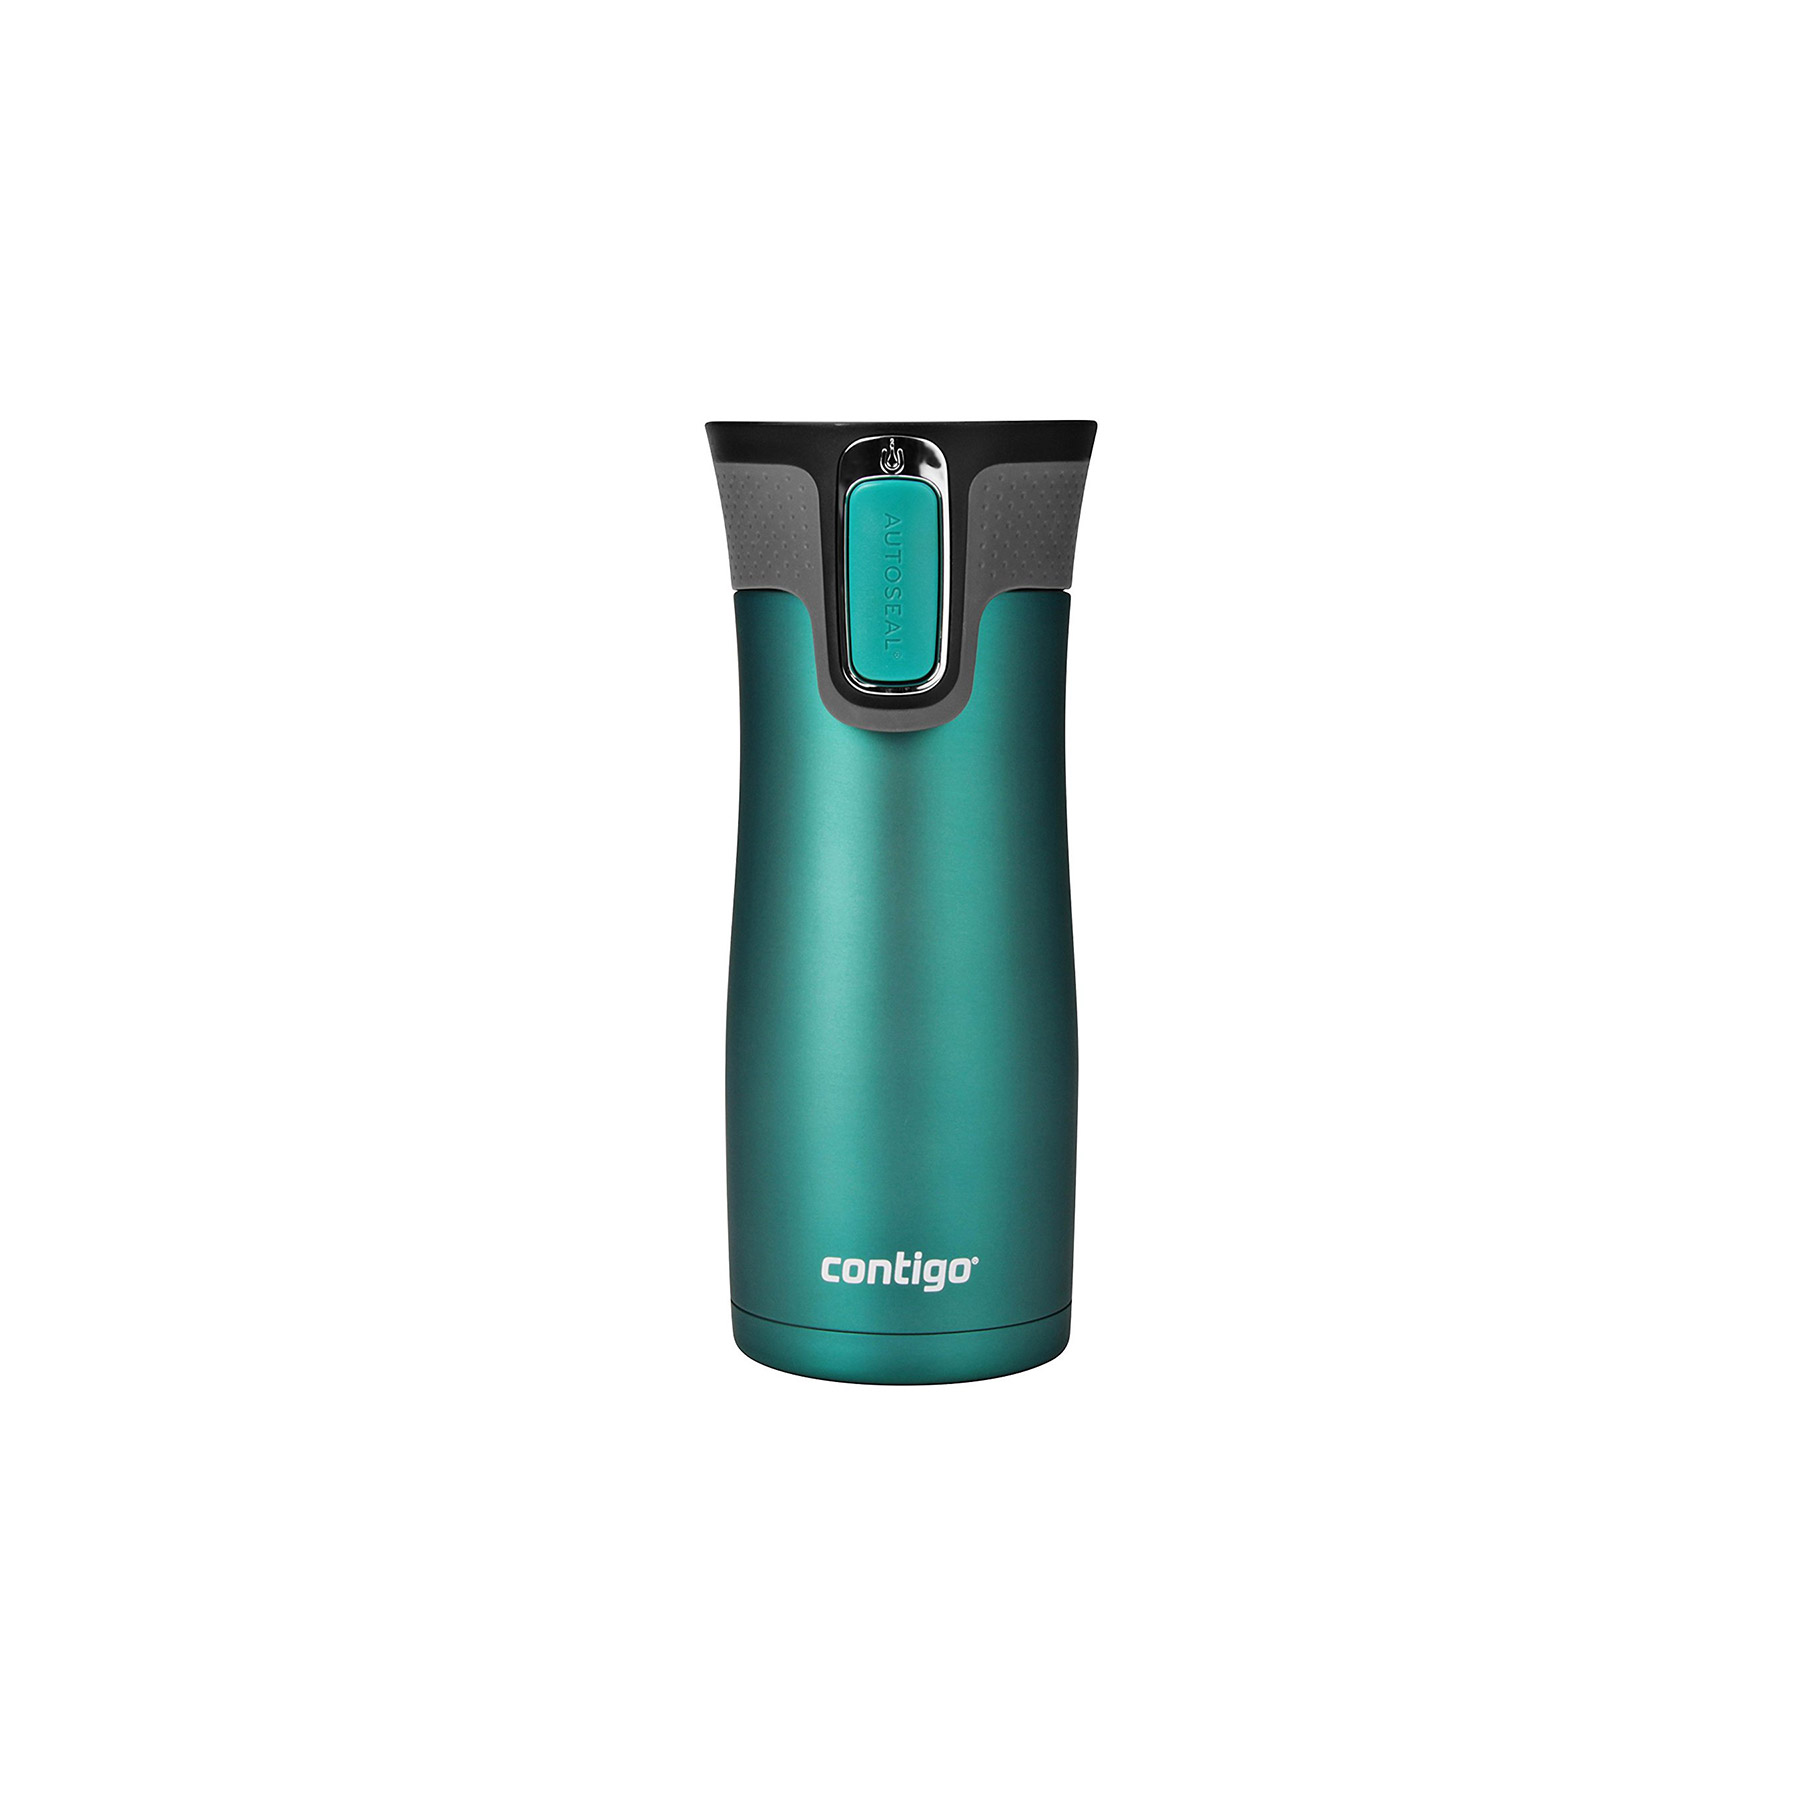 Contingo Autoseal West Stainless Steel Travel Mug